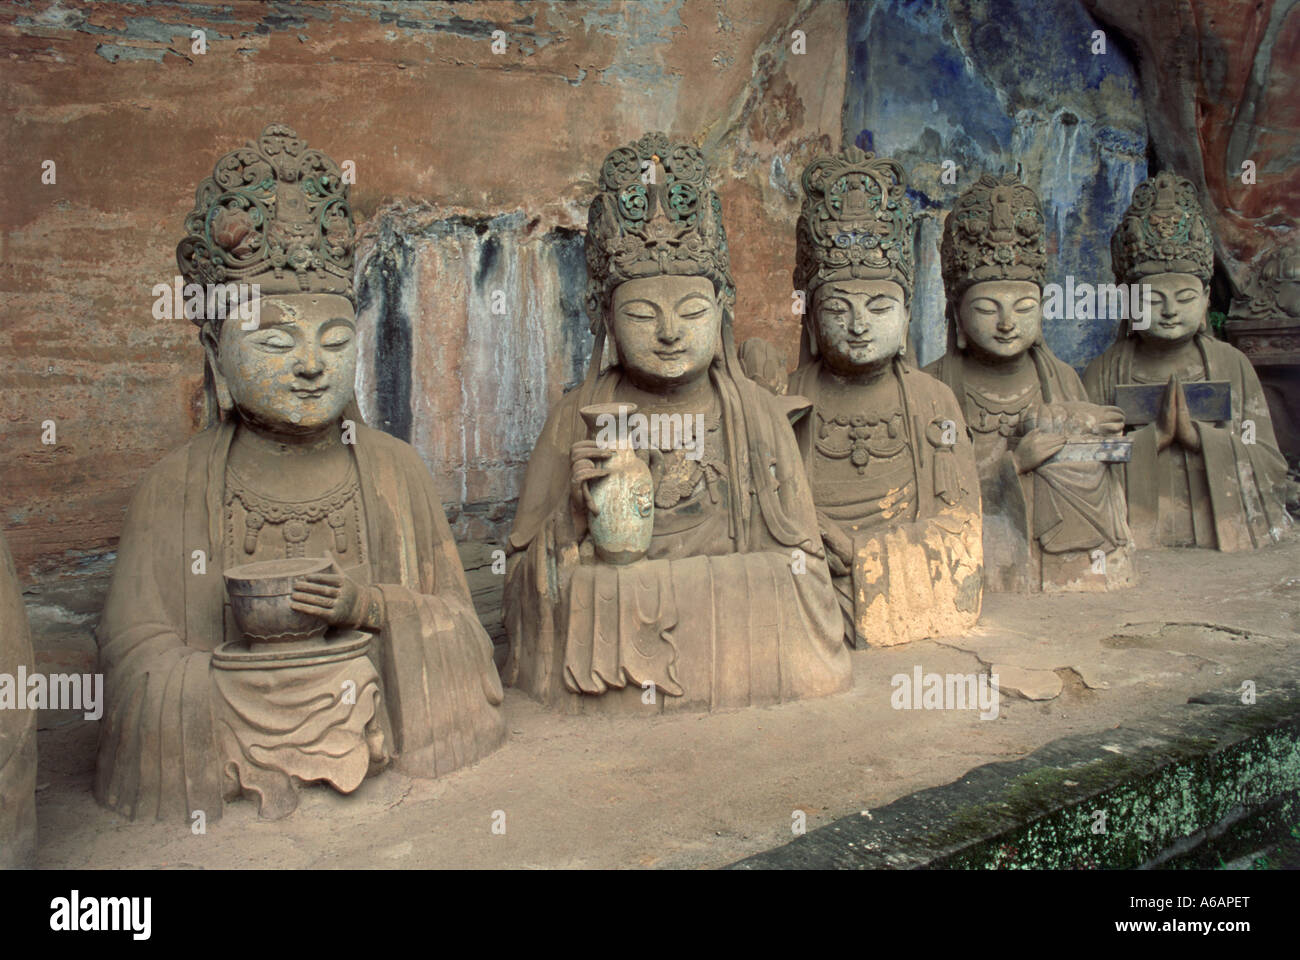 China, Sichuan, Dazu, Baoding Shan, Cave 11, Reclining Buddha, life-like busts of officials donors in meditation - Stock Image